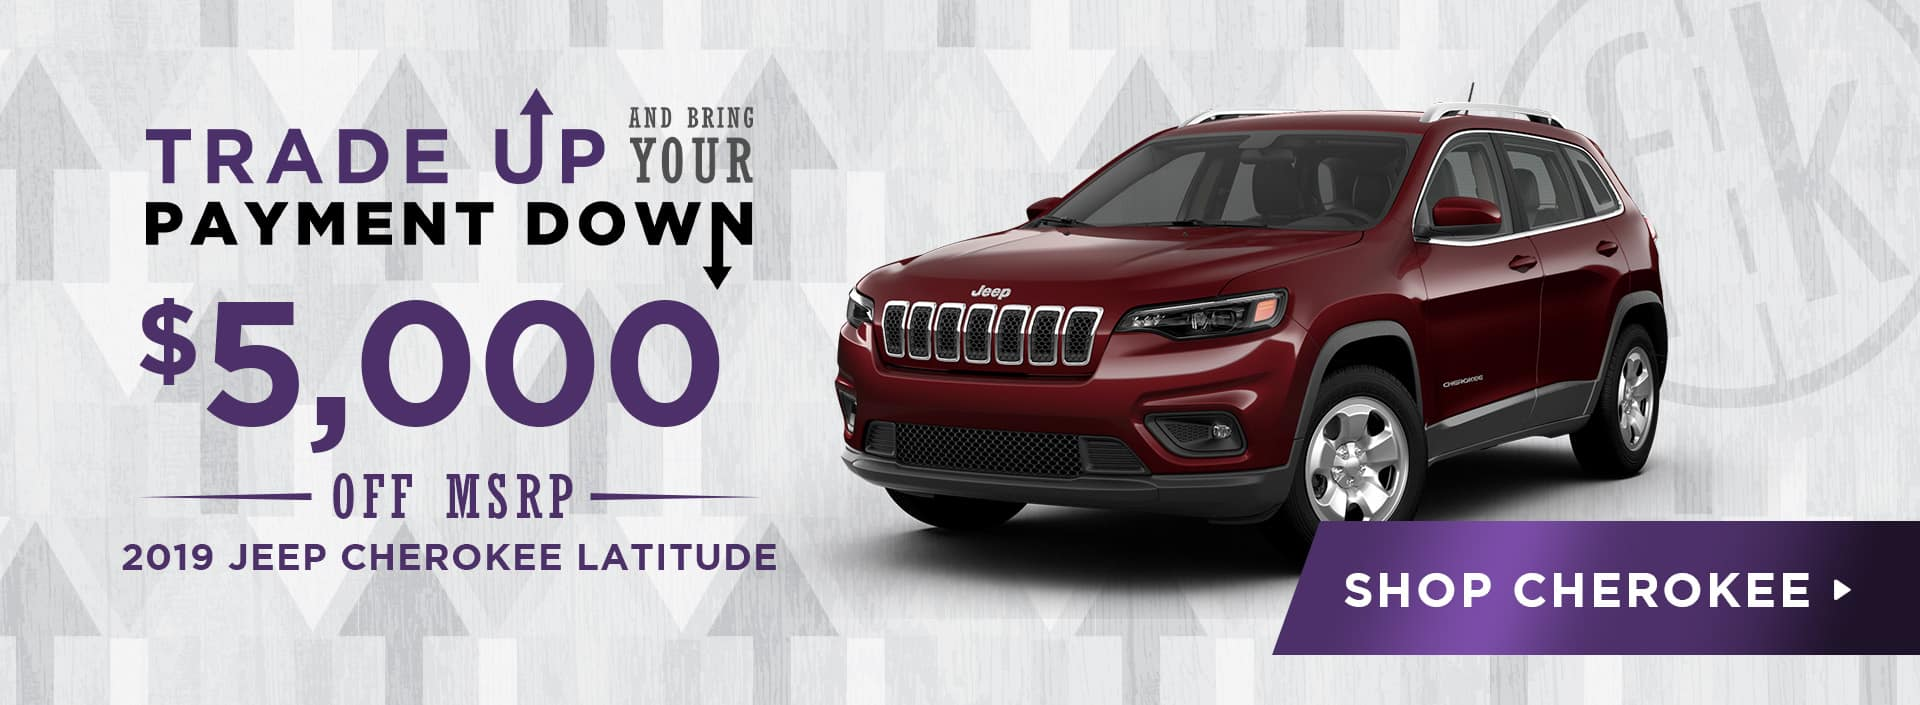 $5,000 Off 2019 Jeep Cherokee Latitude